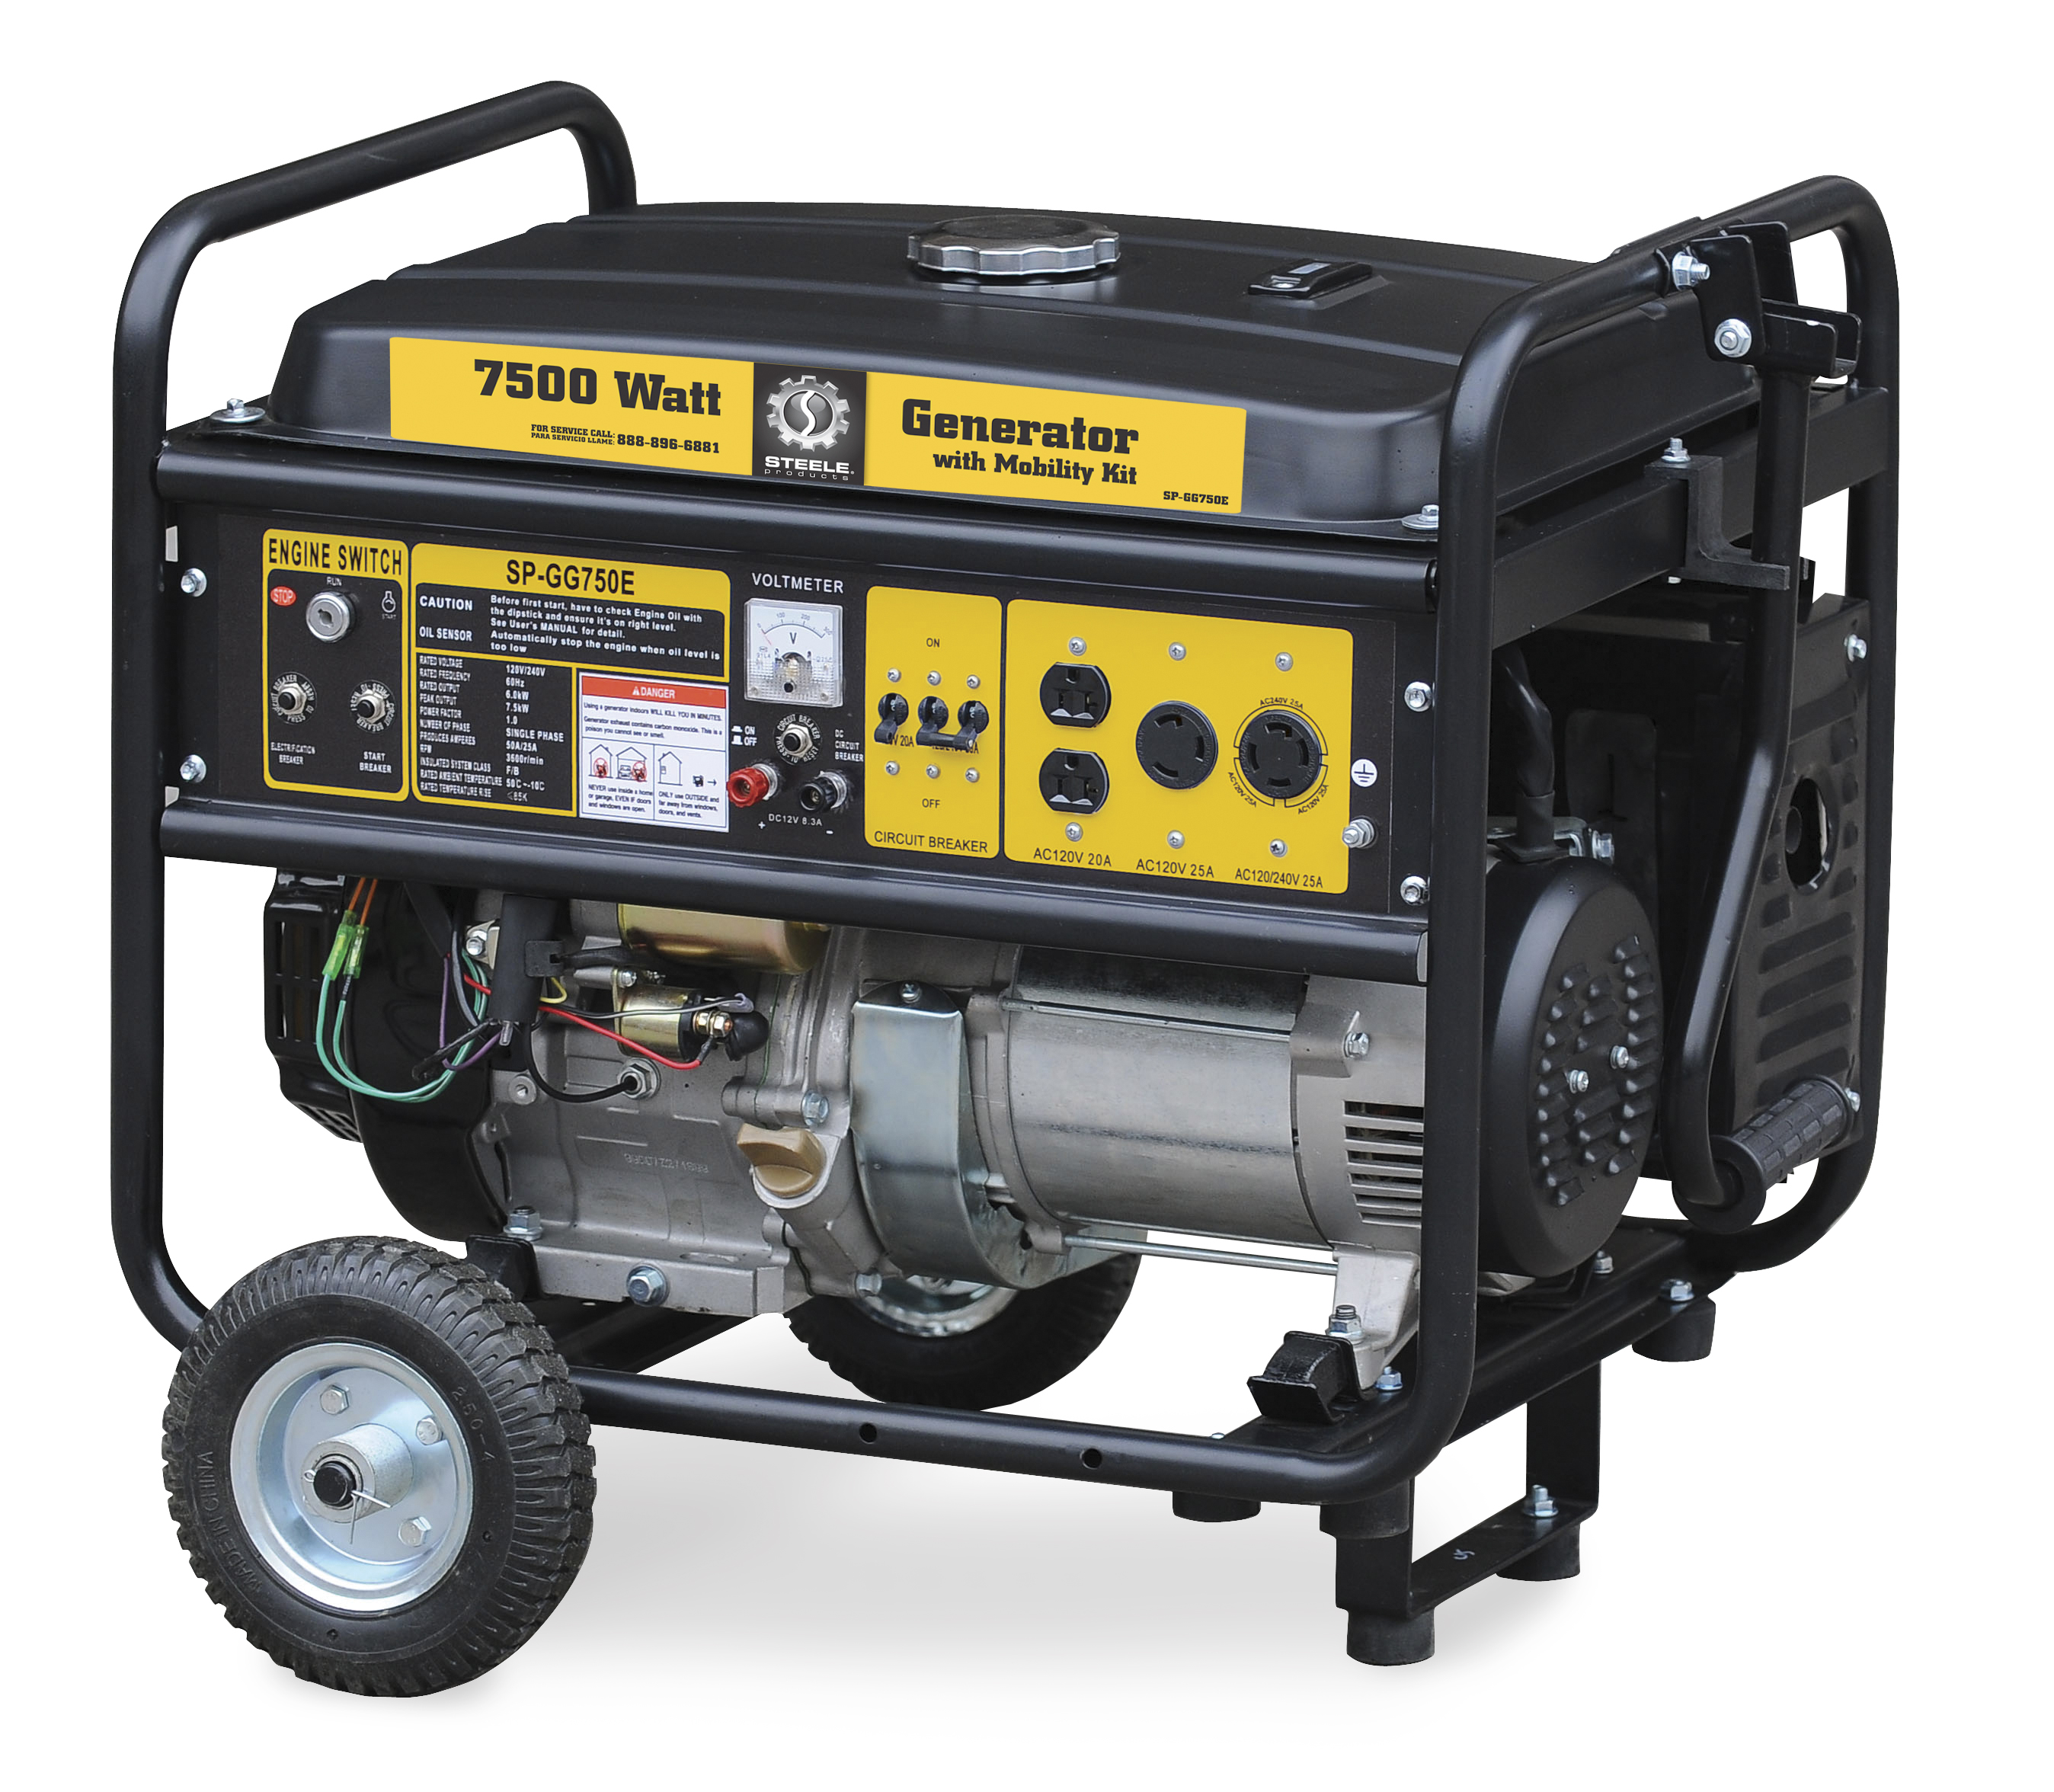 Steele Products Portable Generator 7500 Watts Electric Start Kw 50 Amp Single Phase 120 240 V Standby With 10 Circuit